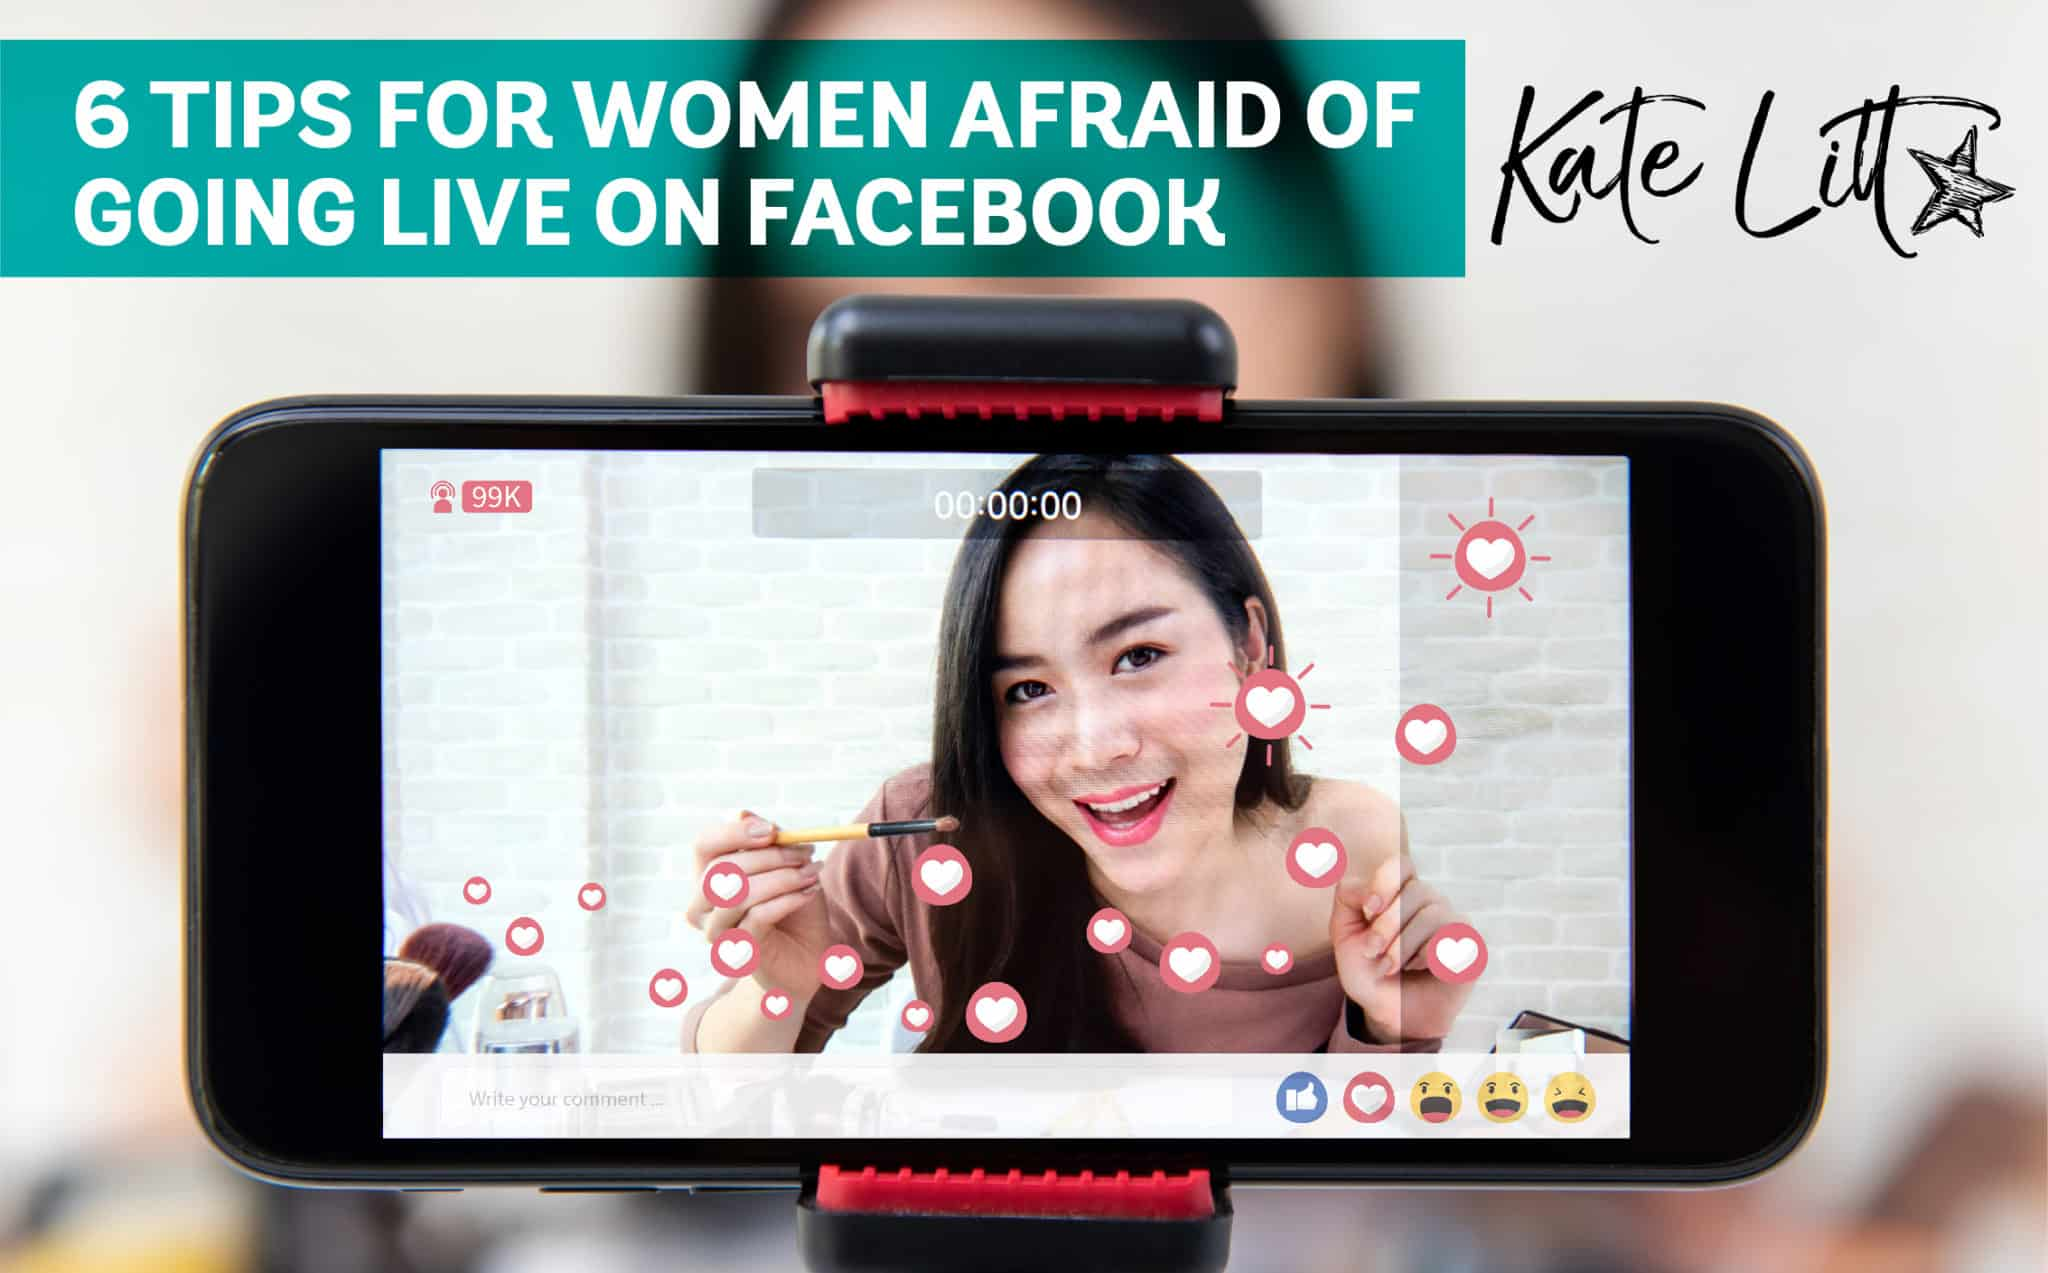 6 Tips for Women Afraid of Going Live on Facebook